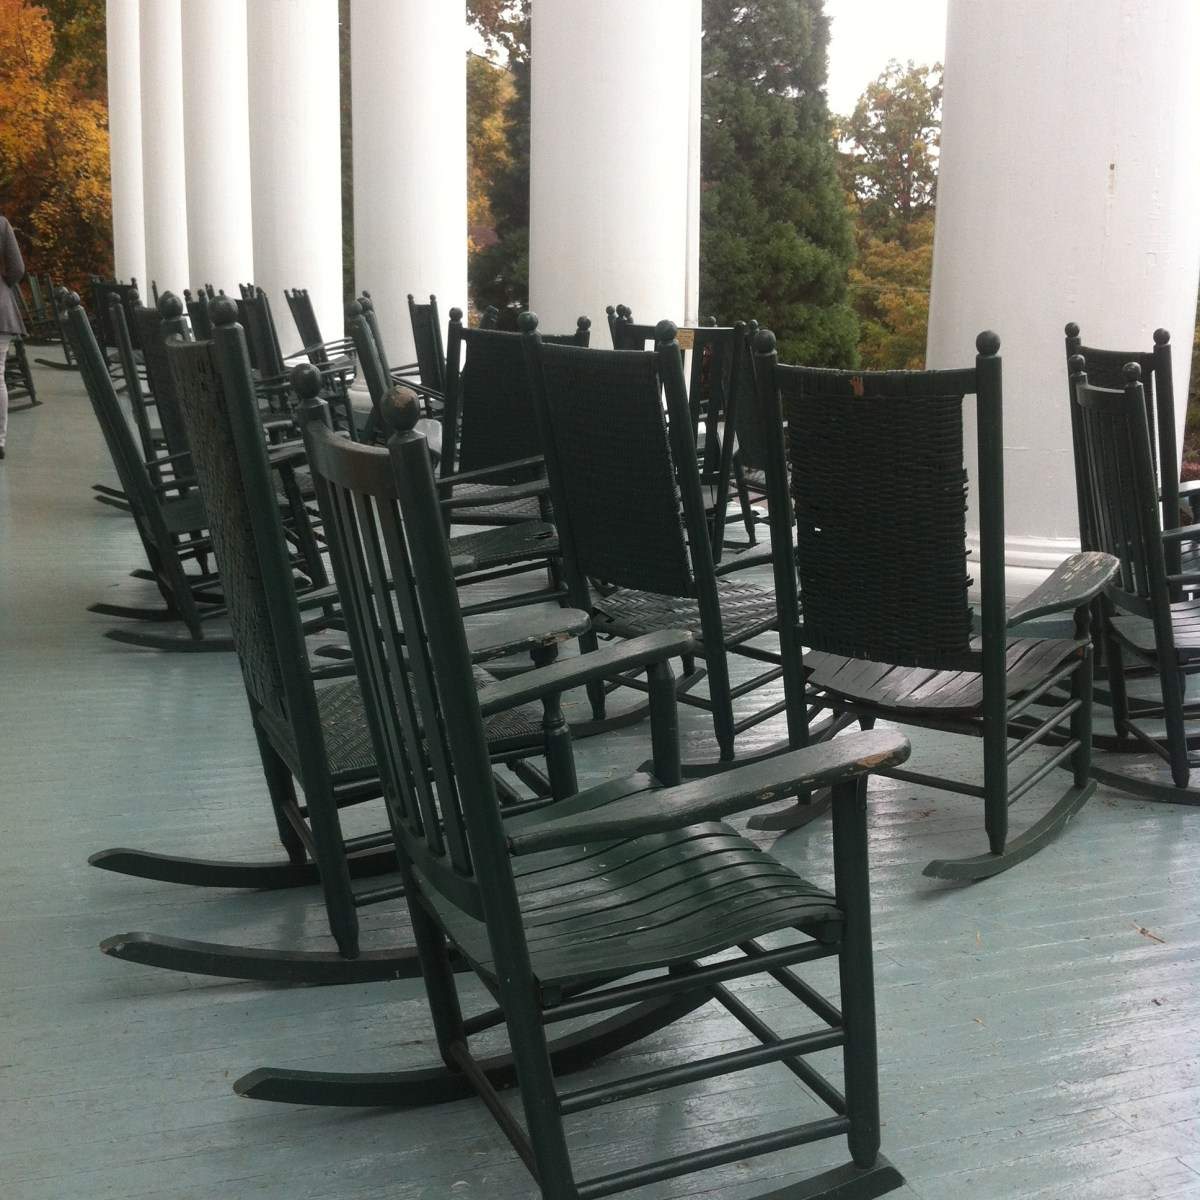 Rocking Chairs On The Porch Of The Blue Ridge Lee Hall Of